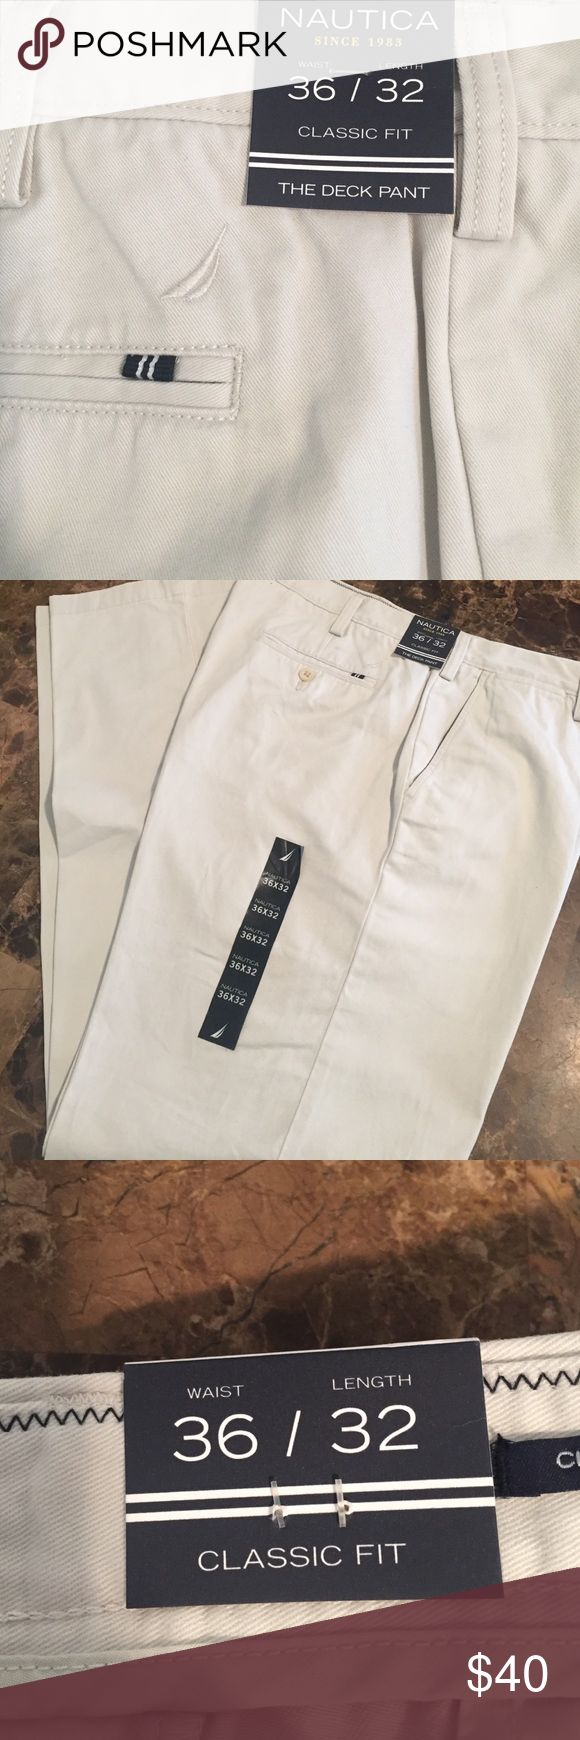 Brand New Nautica Men's Classic Fit pants 👖 Brand New Nautica Men's Classic Fit pants 👖waist 36 lenght 32 classic Fit color: light cream( PRICE IS FIRM PLEASE !) Nautica Pants Chinos & Khakis